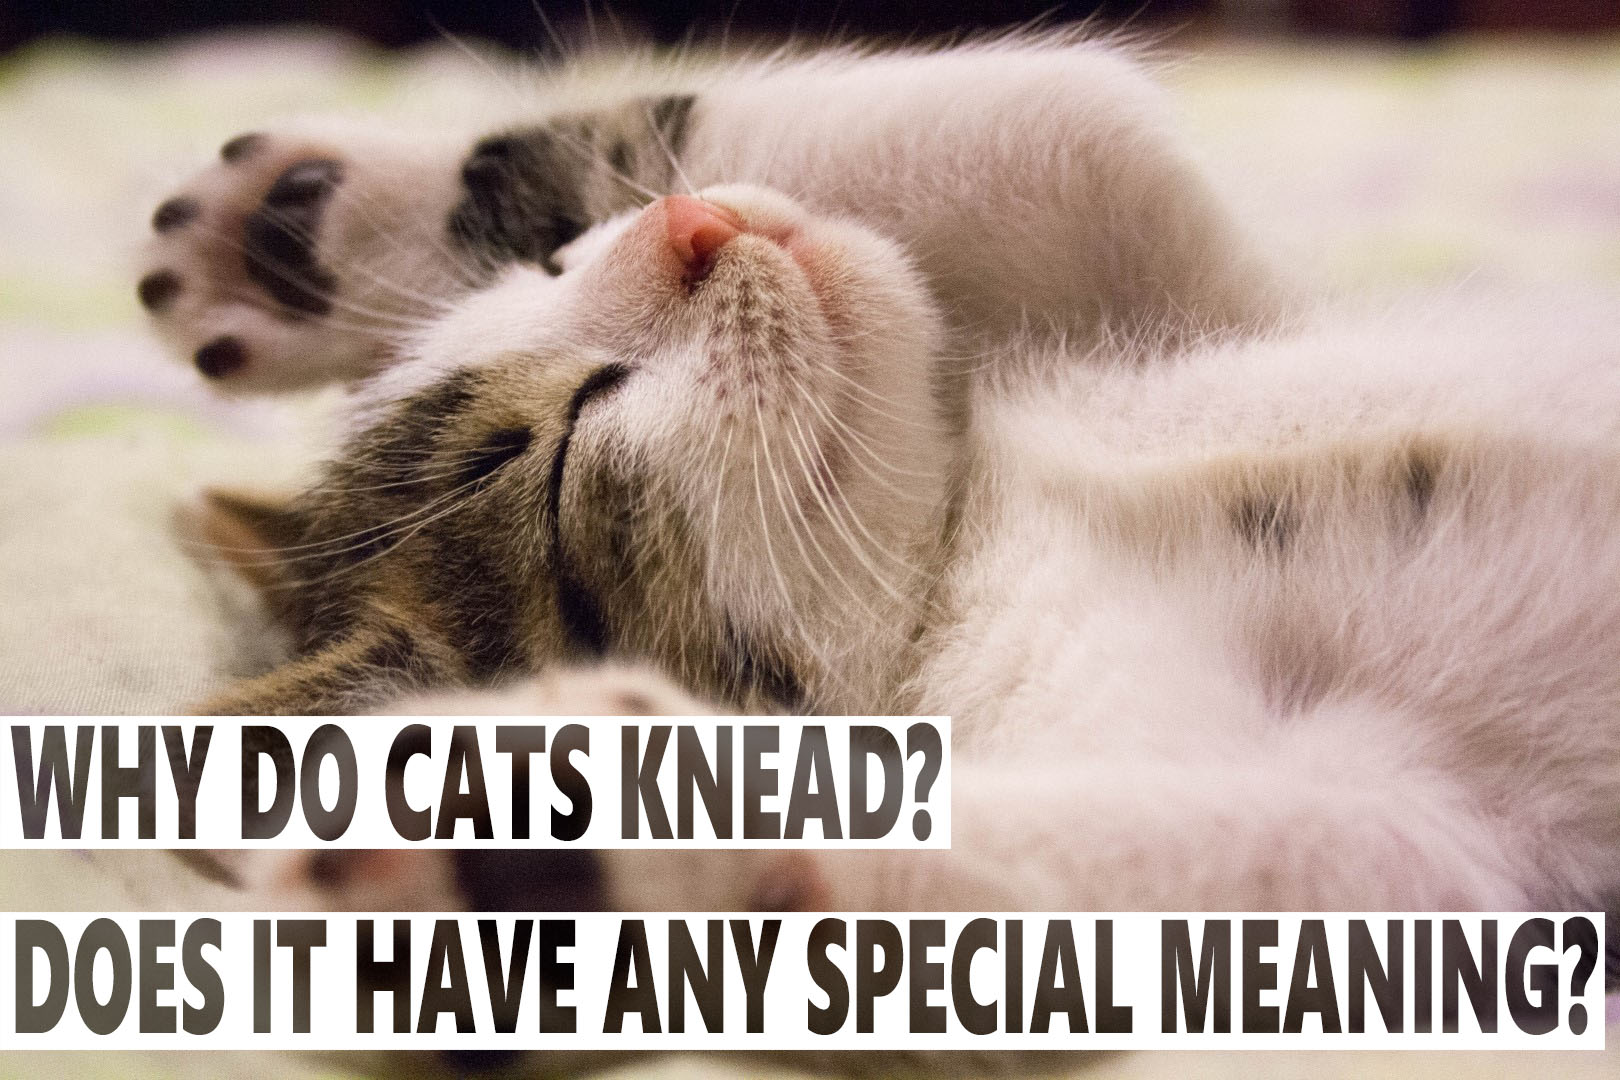 Why Do Cats Knead? Does It Have Any Special Meaning